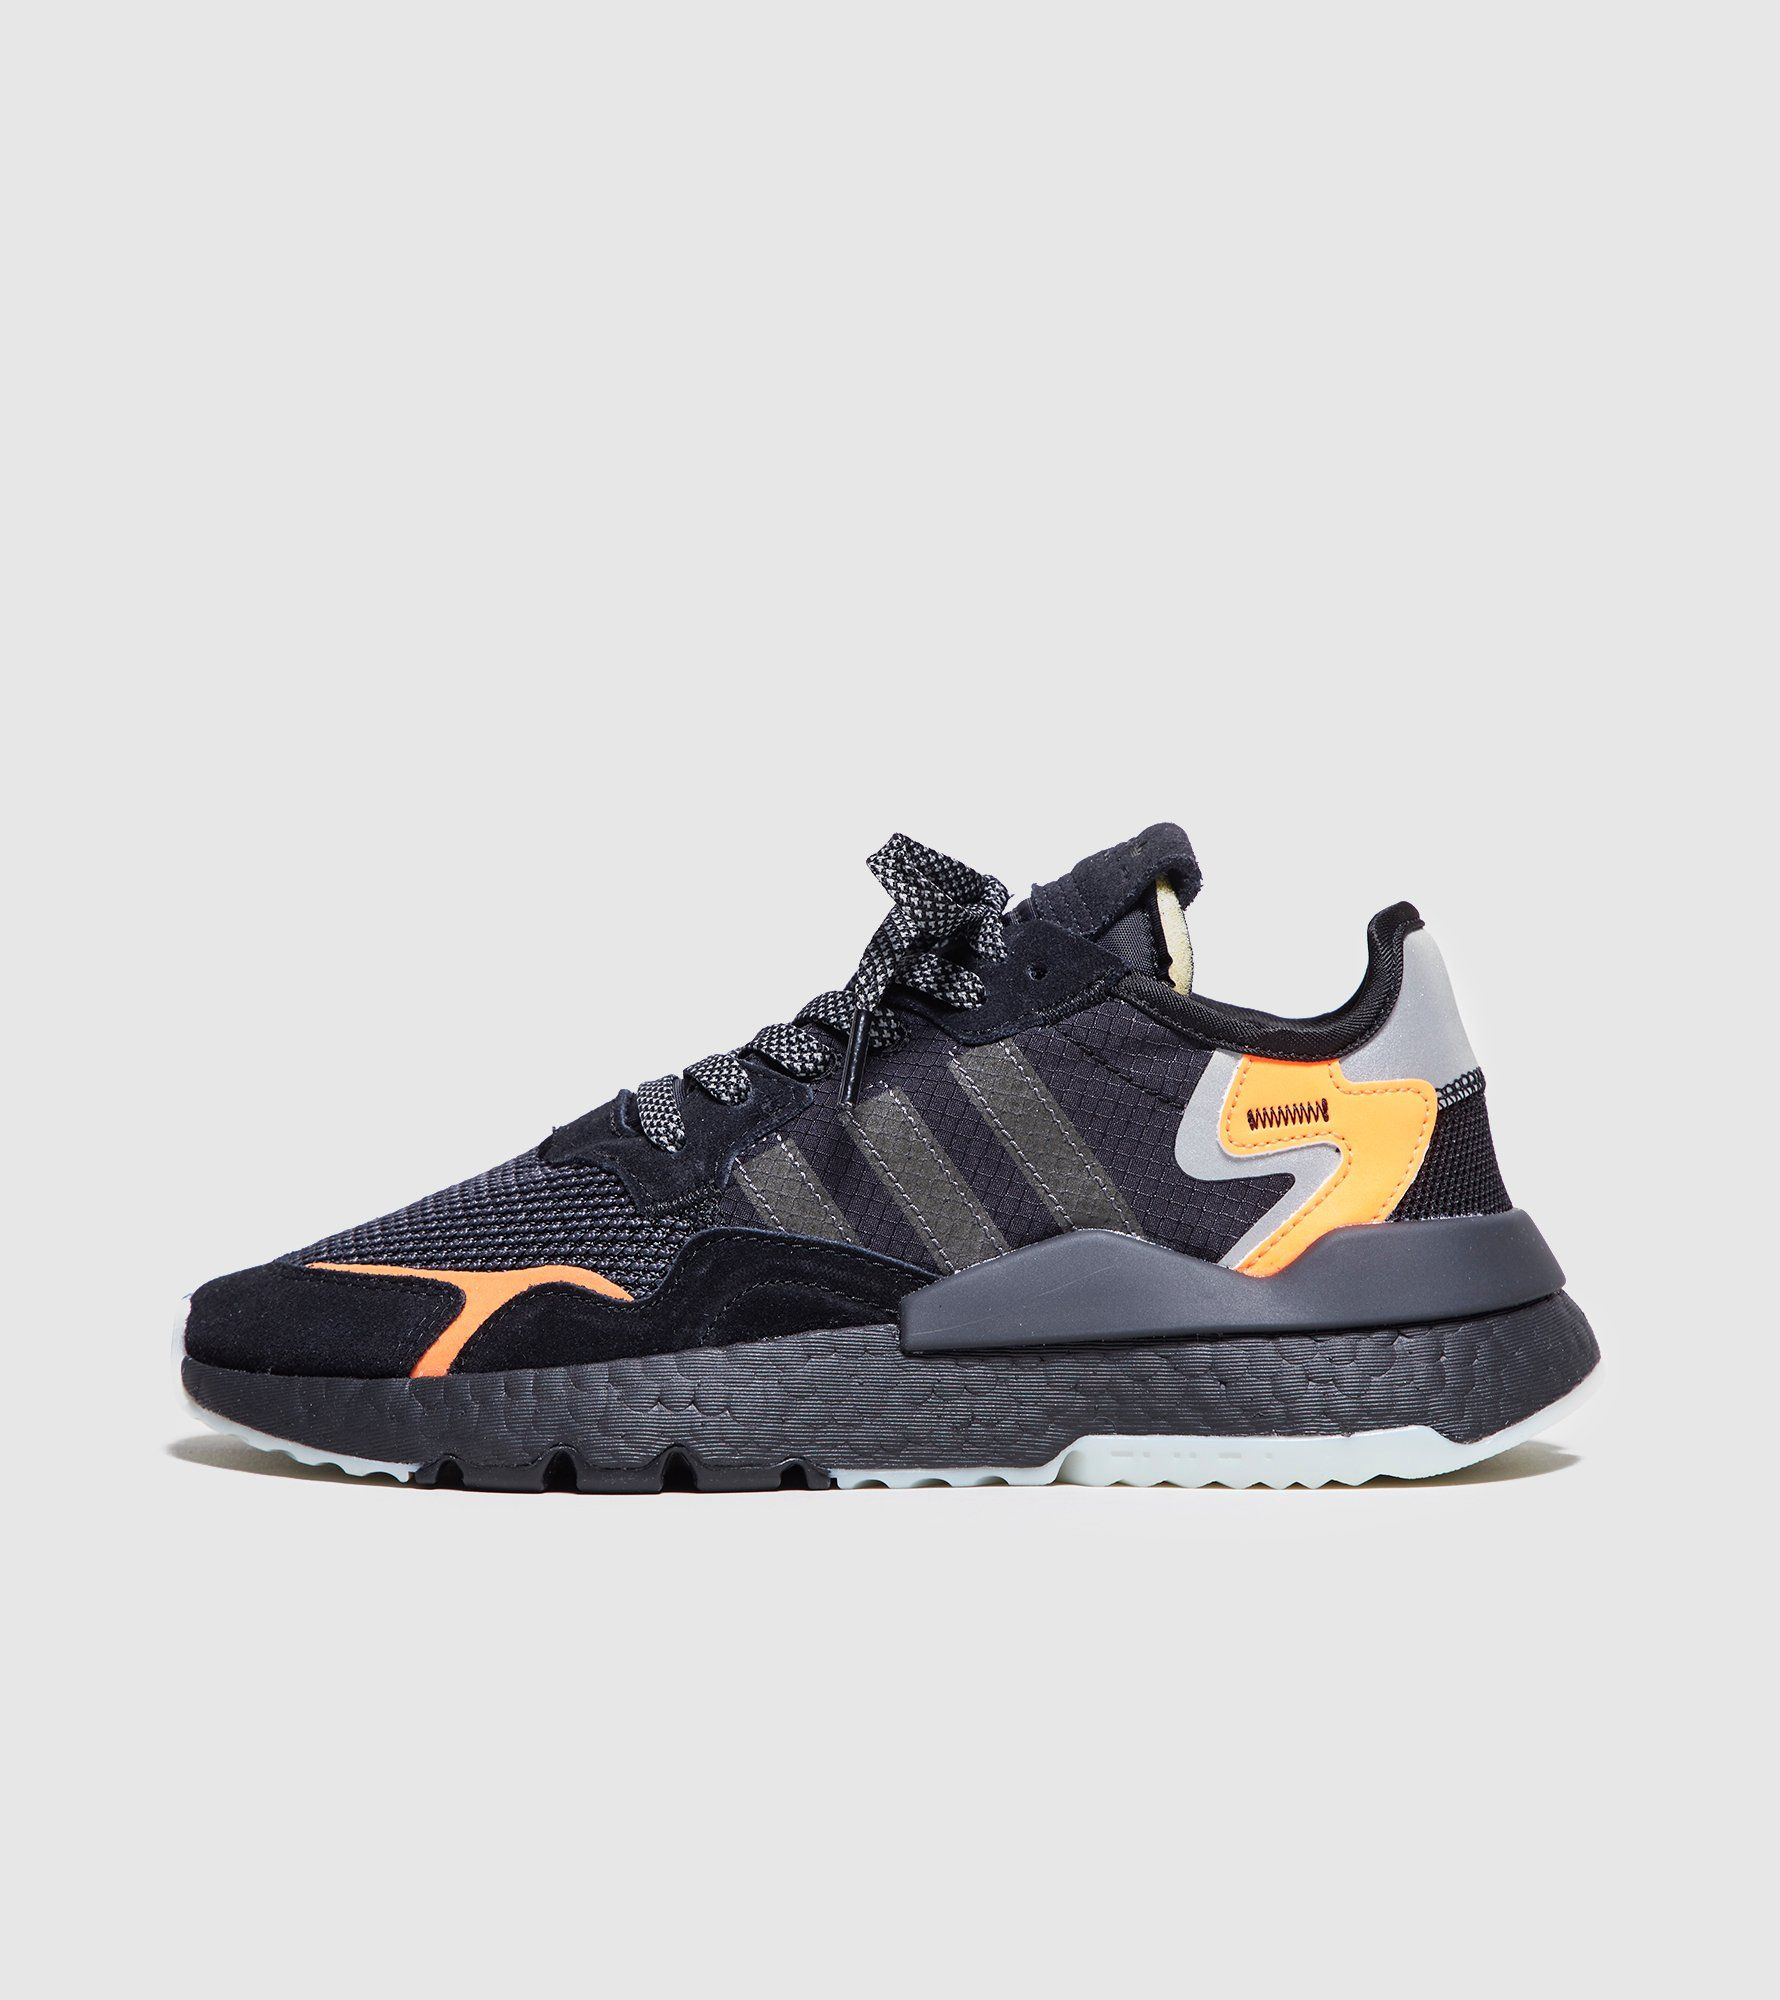 adidas Originals Nite Jogger Women's